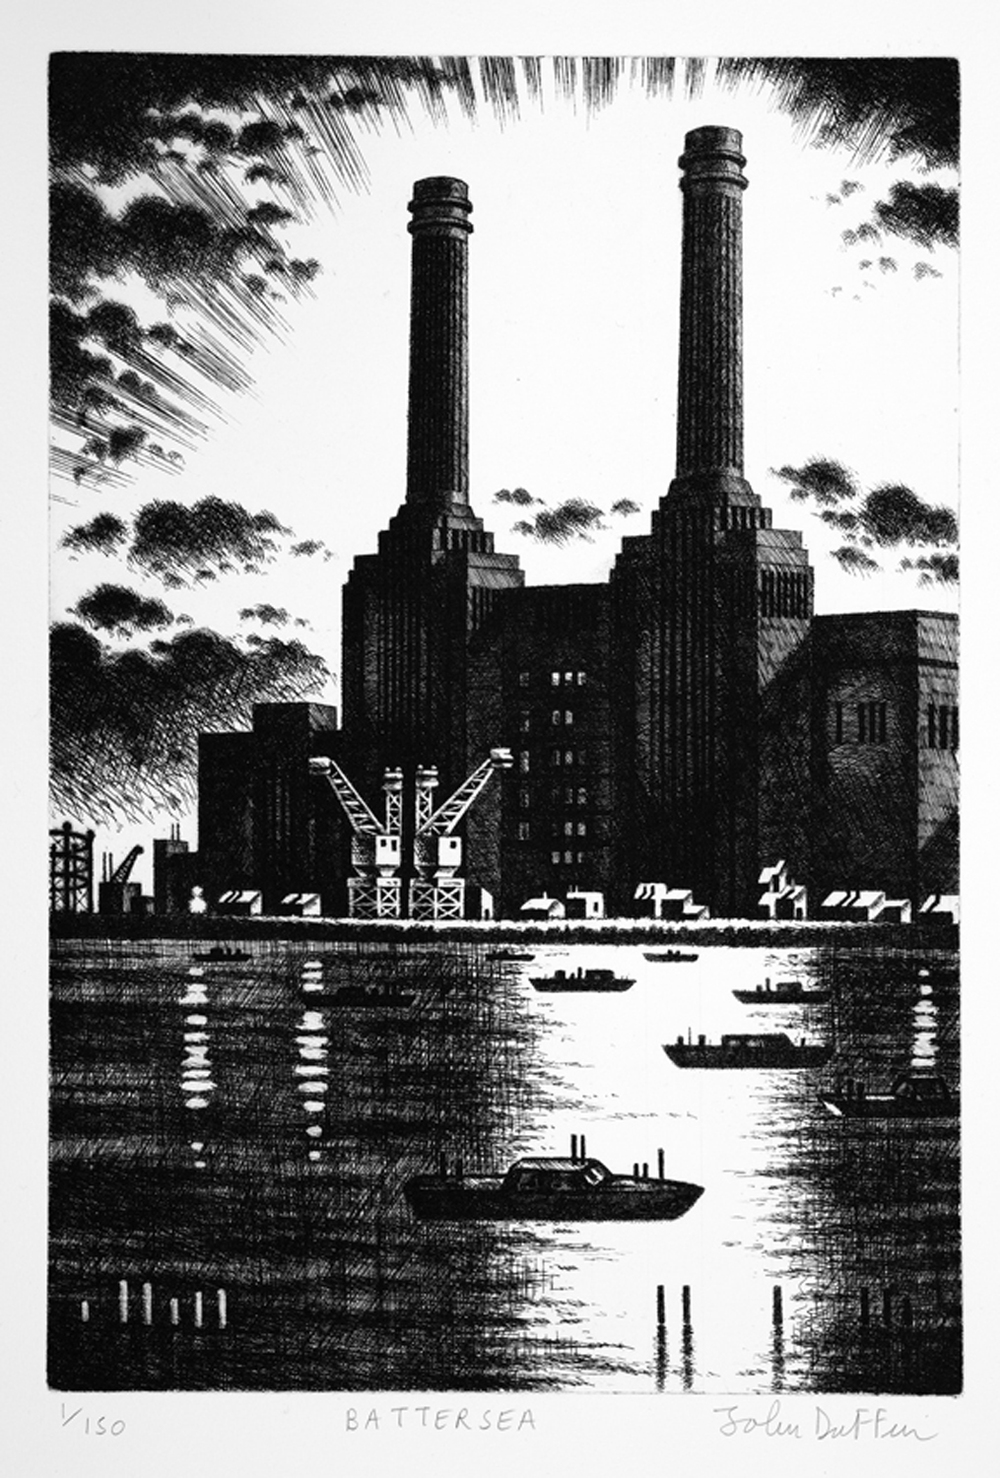 Battersea etching